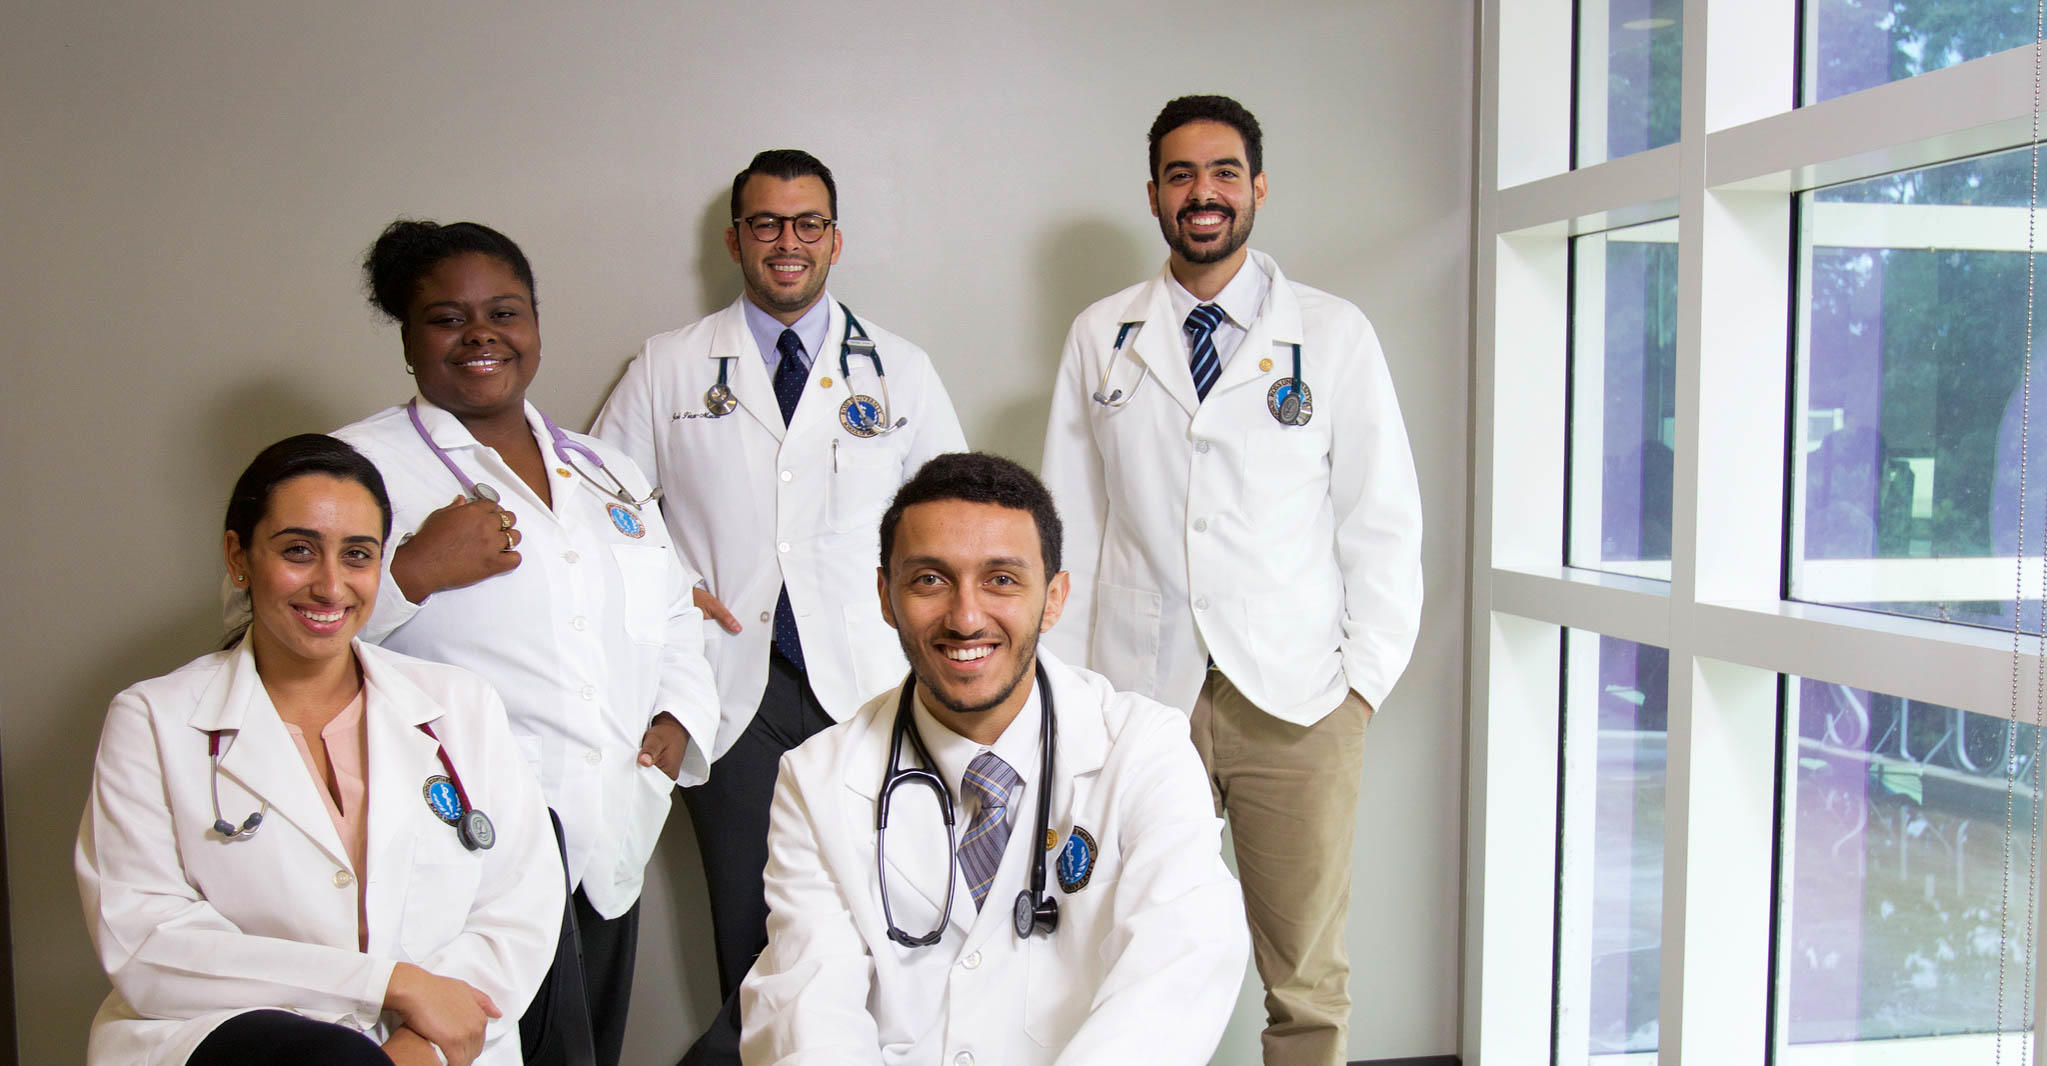 Group picture of Ross University School of Medicine students